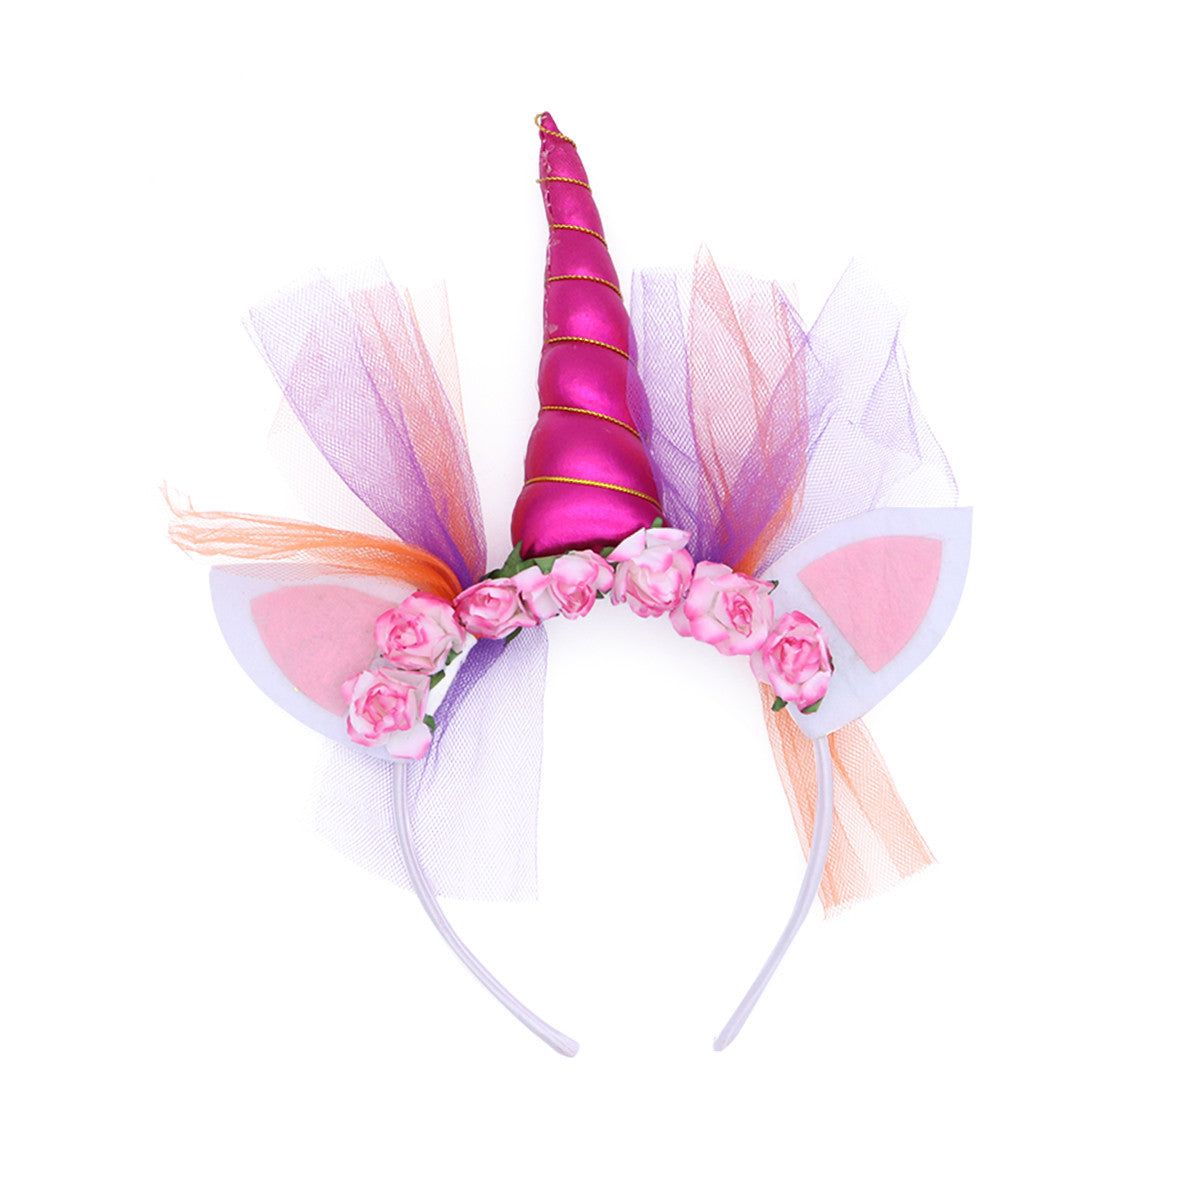 Children s Unicorn Headband · Children s Unicorn Headband ... 7079e95d956